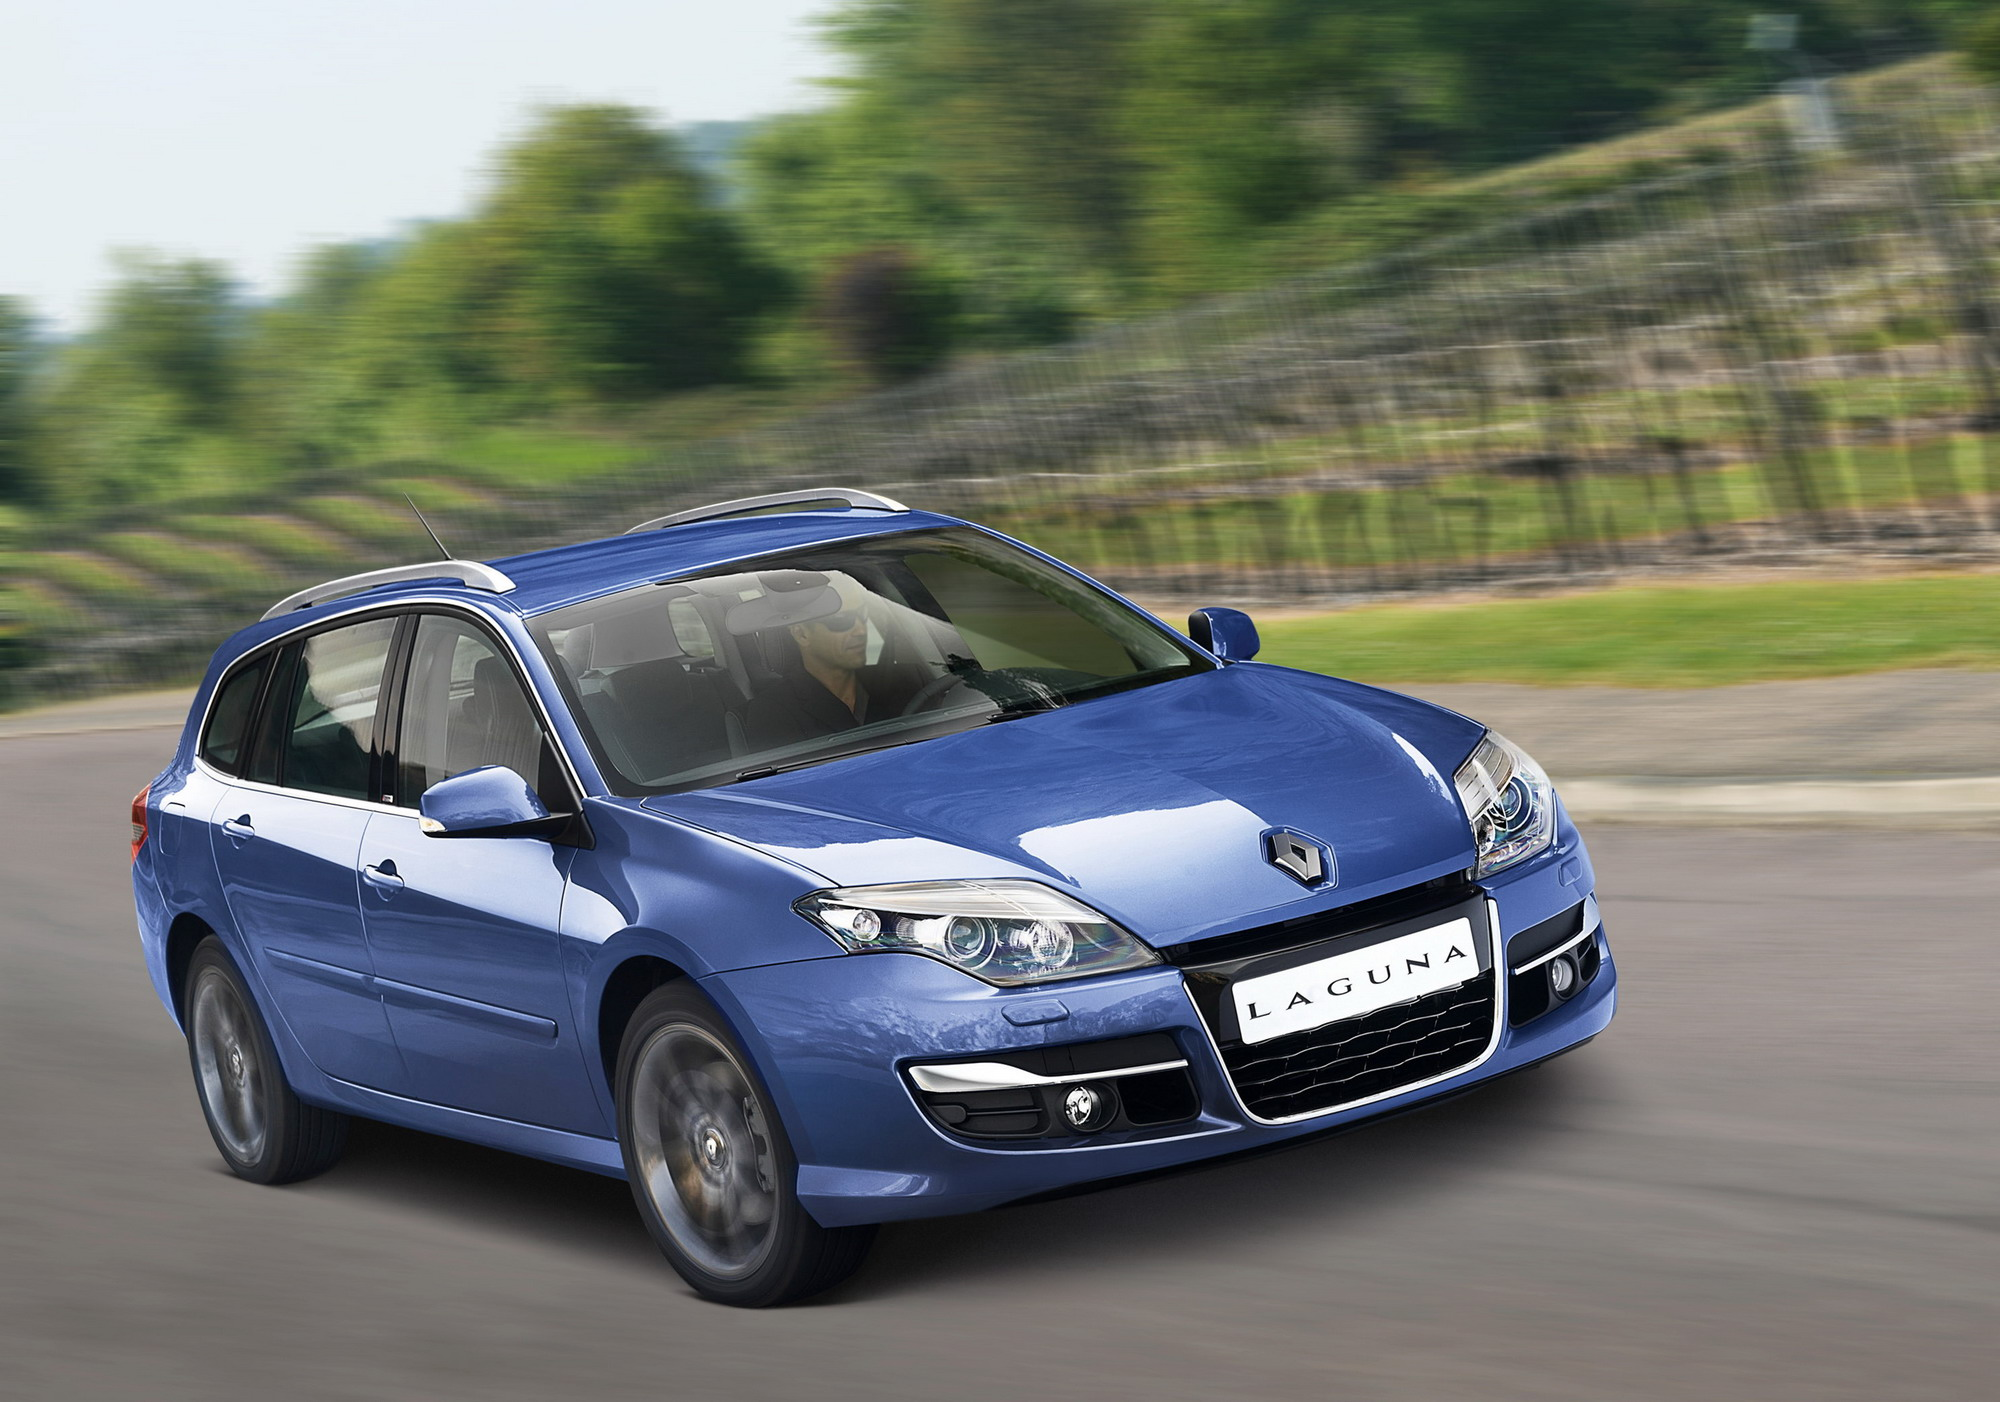 2011 renault laguna review top speed. Black Bedroom Furniture Sets. Home Design Ideas